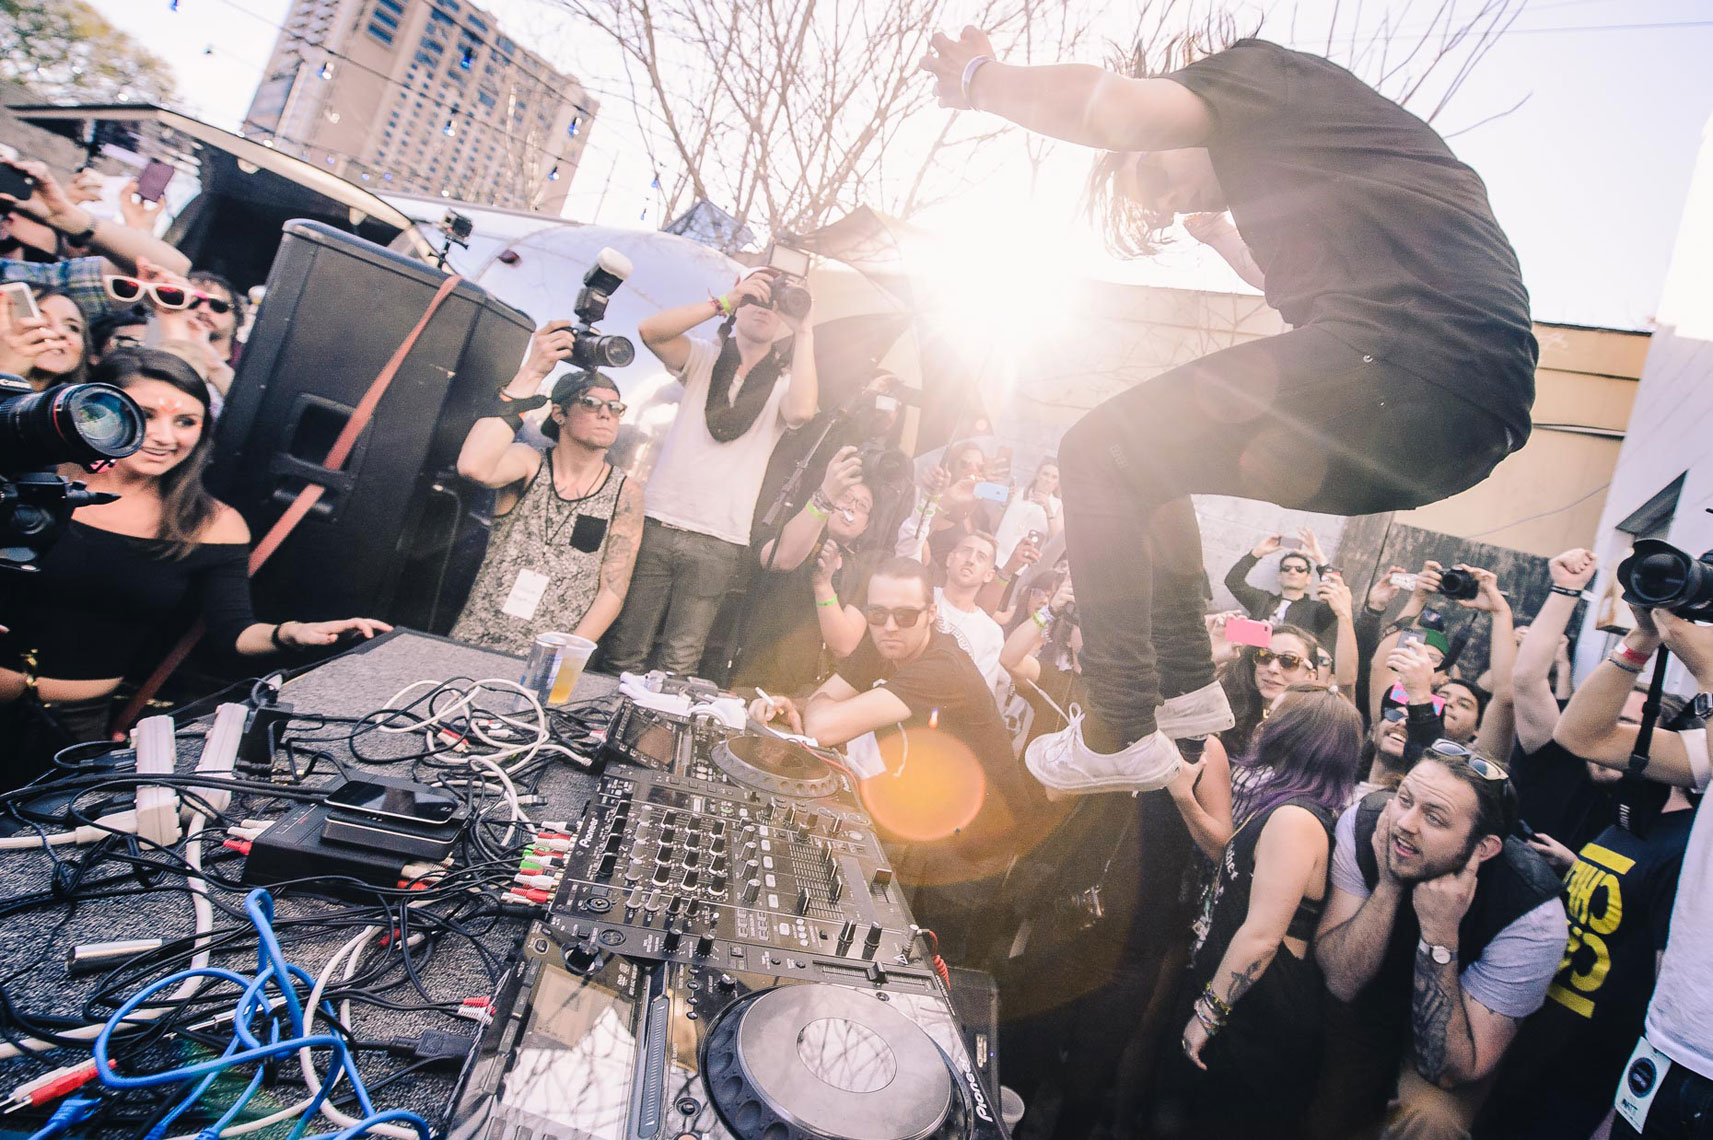 Skrillex at SXSW